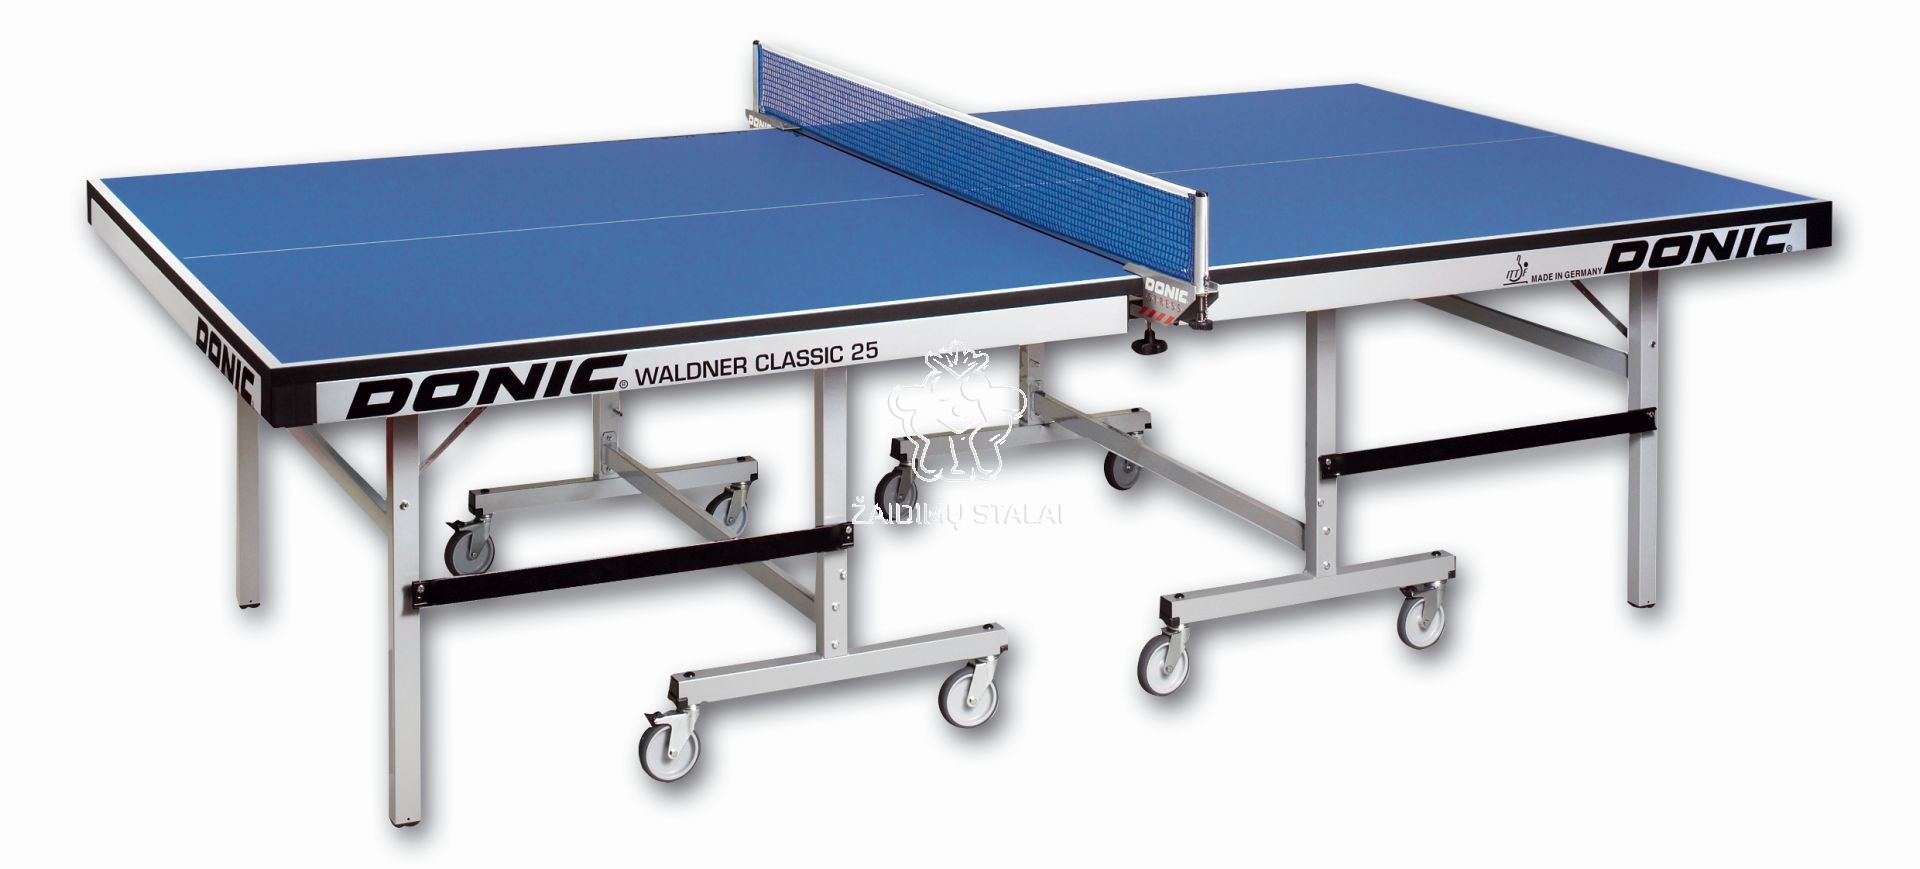 Stalo teniso stalas Donic Waldner Classic, mėlynas, 25mm MDF, ITTF